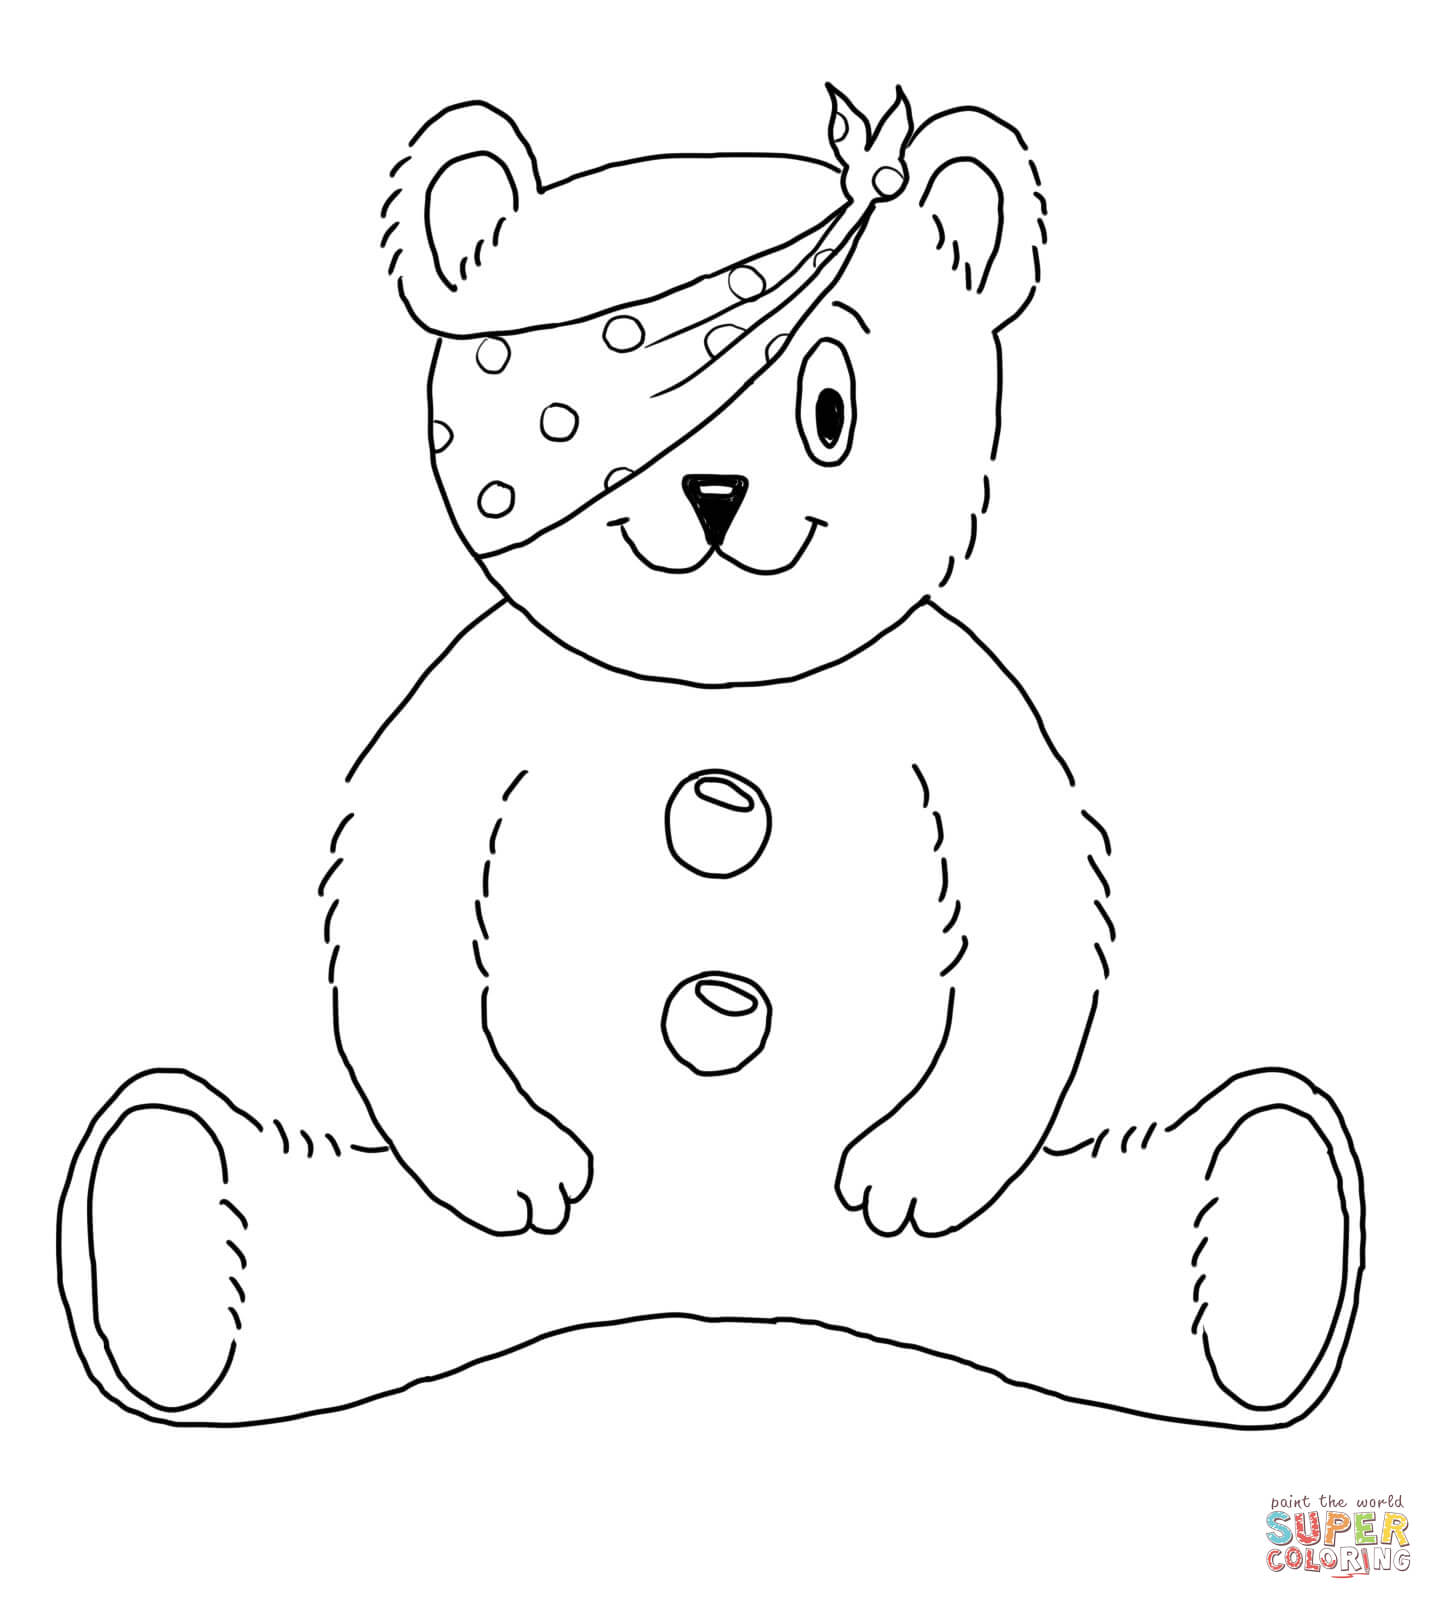 pudsey colouring pages 10 best pudsey colouring sheets images on pinterest bear pudsey pages colouring